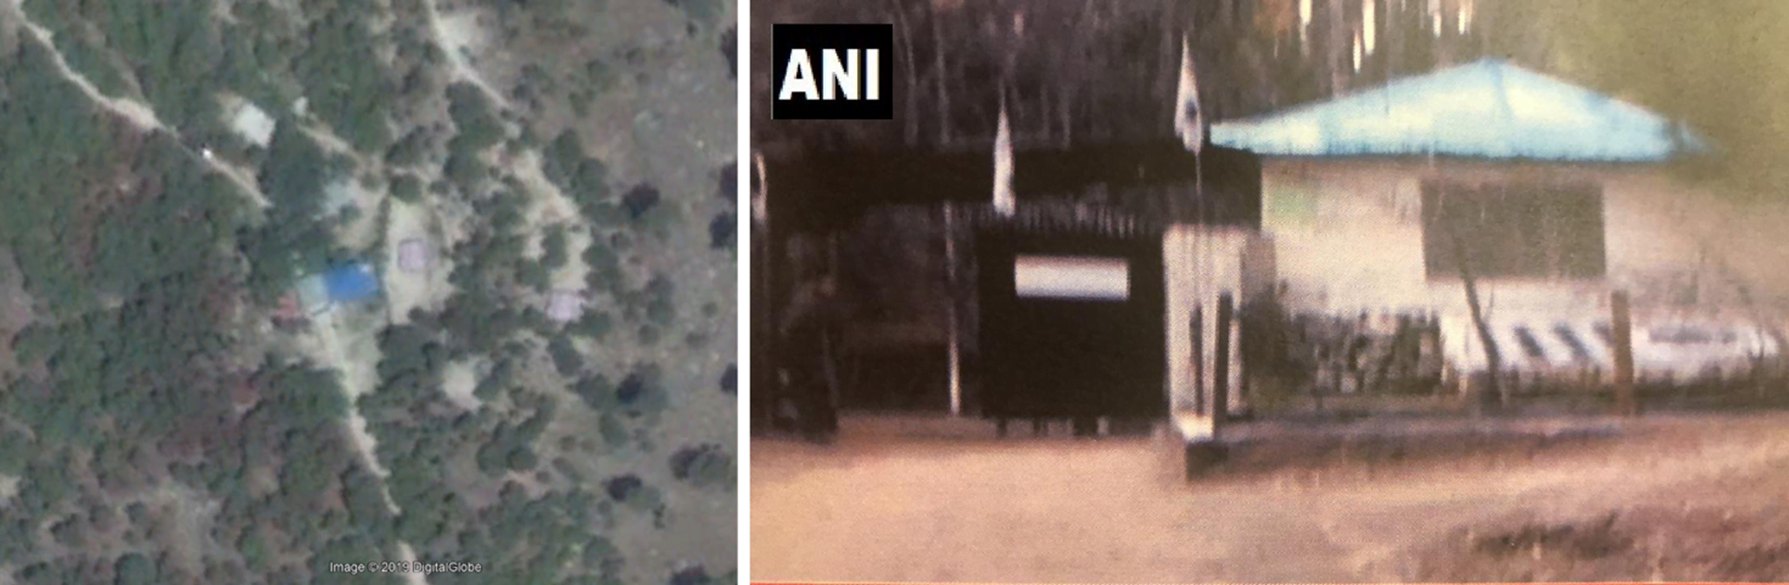 Comparison between ground-level and satellite imagery. (Sources: Google Maps, @ANI/archive)